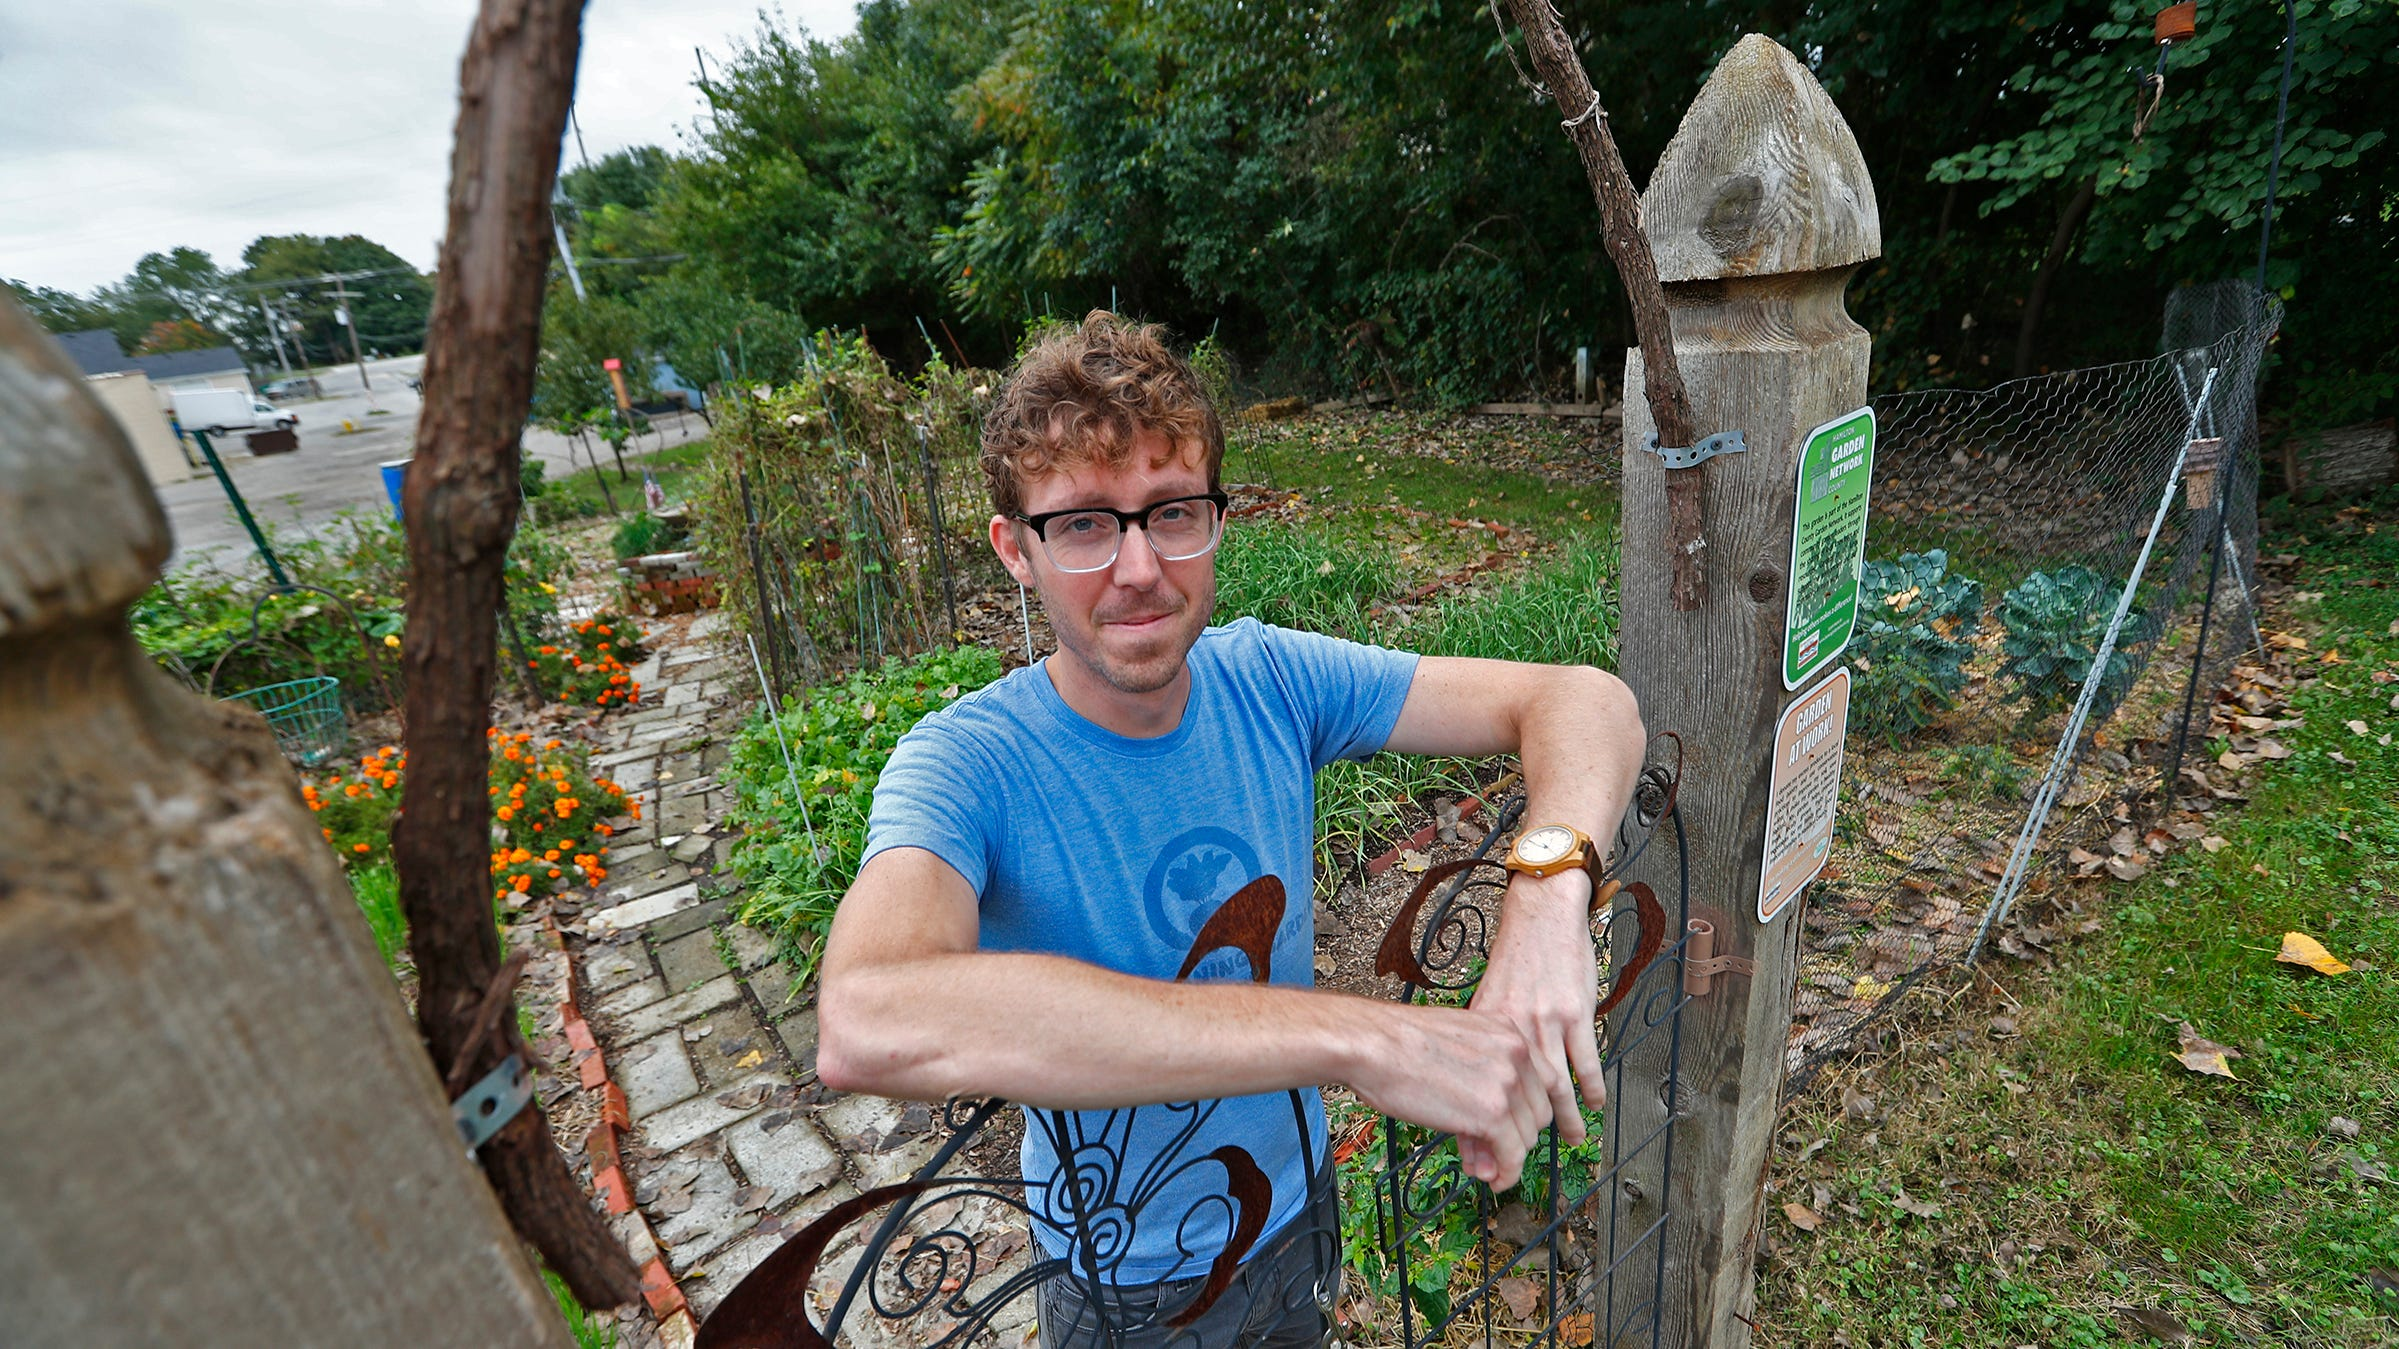 Andrew Fritz stands in the Gleaning Garden in Carmel, Wednesday, Oct. 10, 2018.  The community garden, started in 2012, is just south of the Union Brewing Co., along the Monon Trail.  The garden aims to bring community together but also provides food for a local food pantry.  It also looks at the community's ecology, working to improve soil health, and animal and insect habitat.  Fritz says the future of the garden is unknown as the tract of land is up for sale.